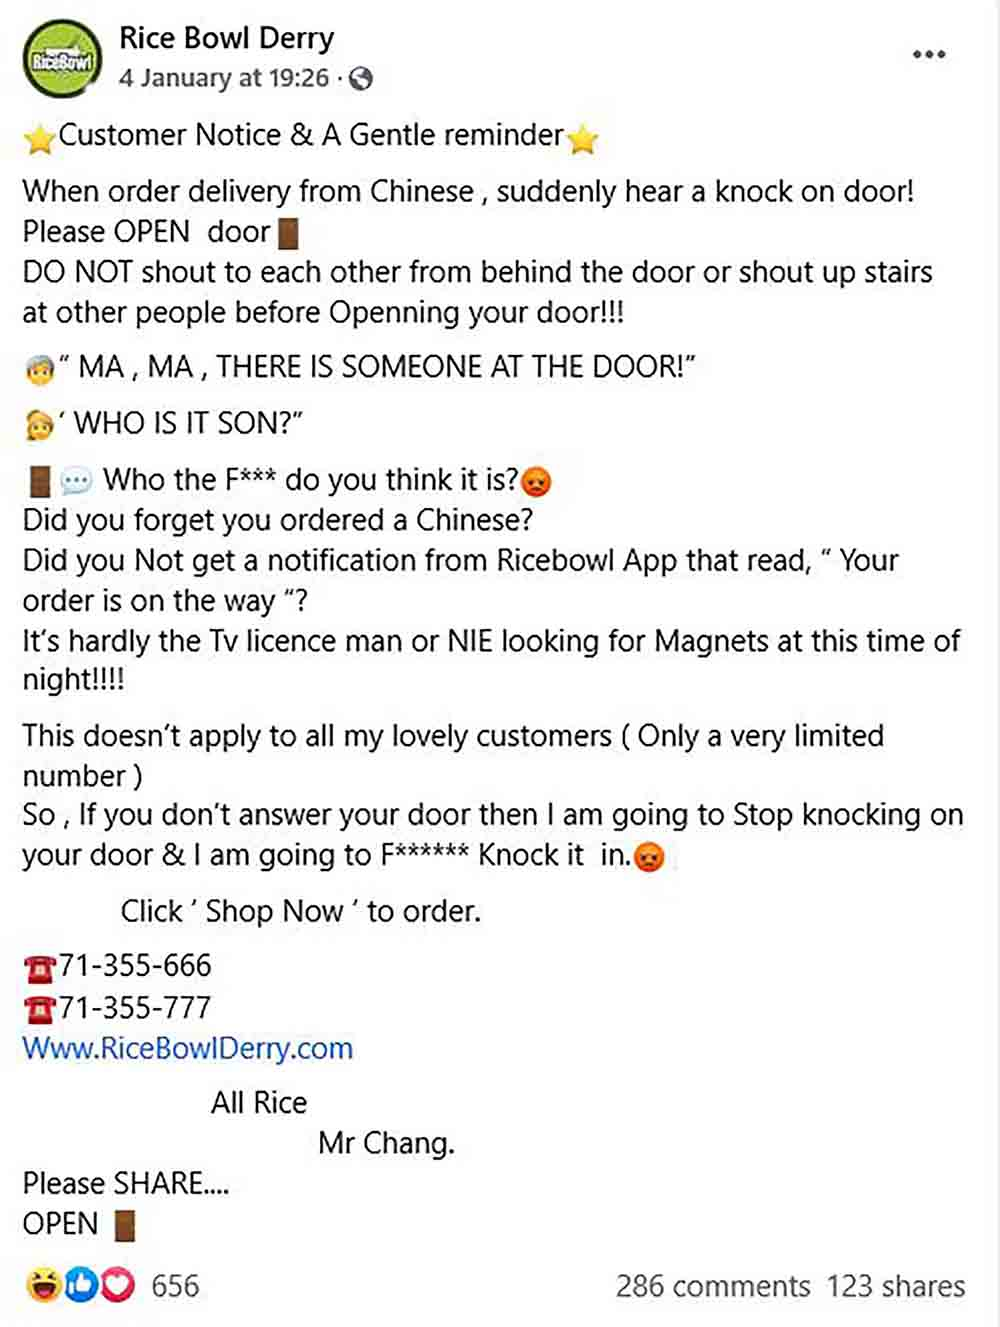 Facebook post made by Chinese takeaway goes viral after posting reminder about answering the door - Viral News UK